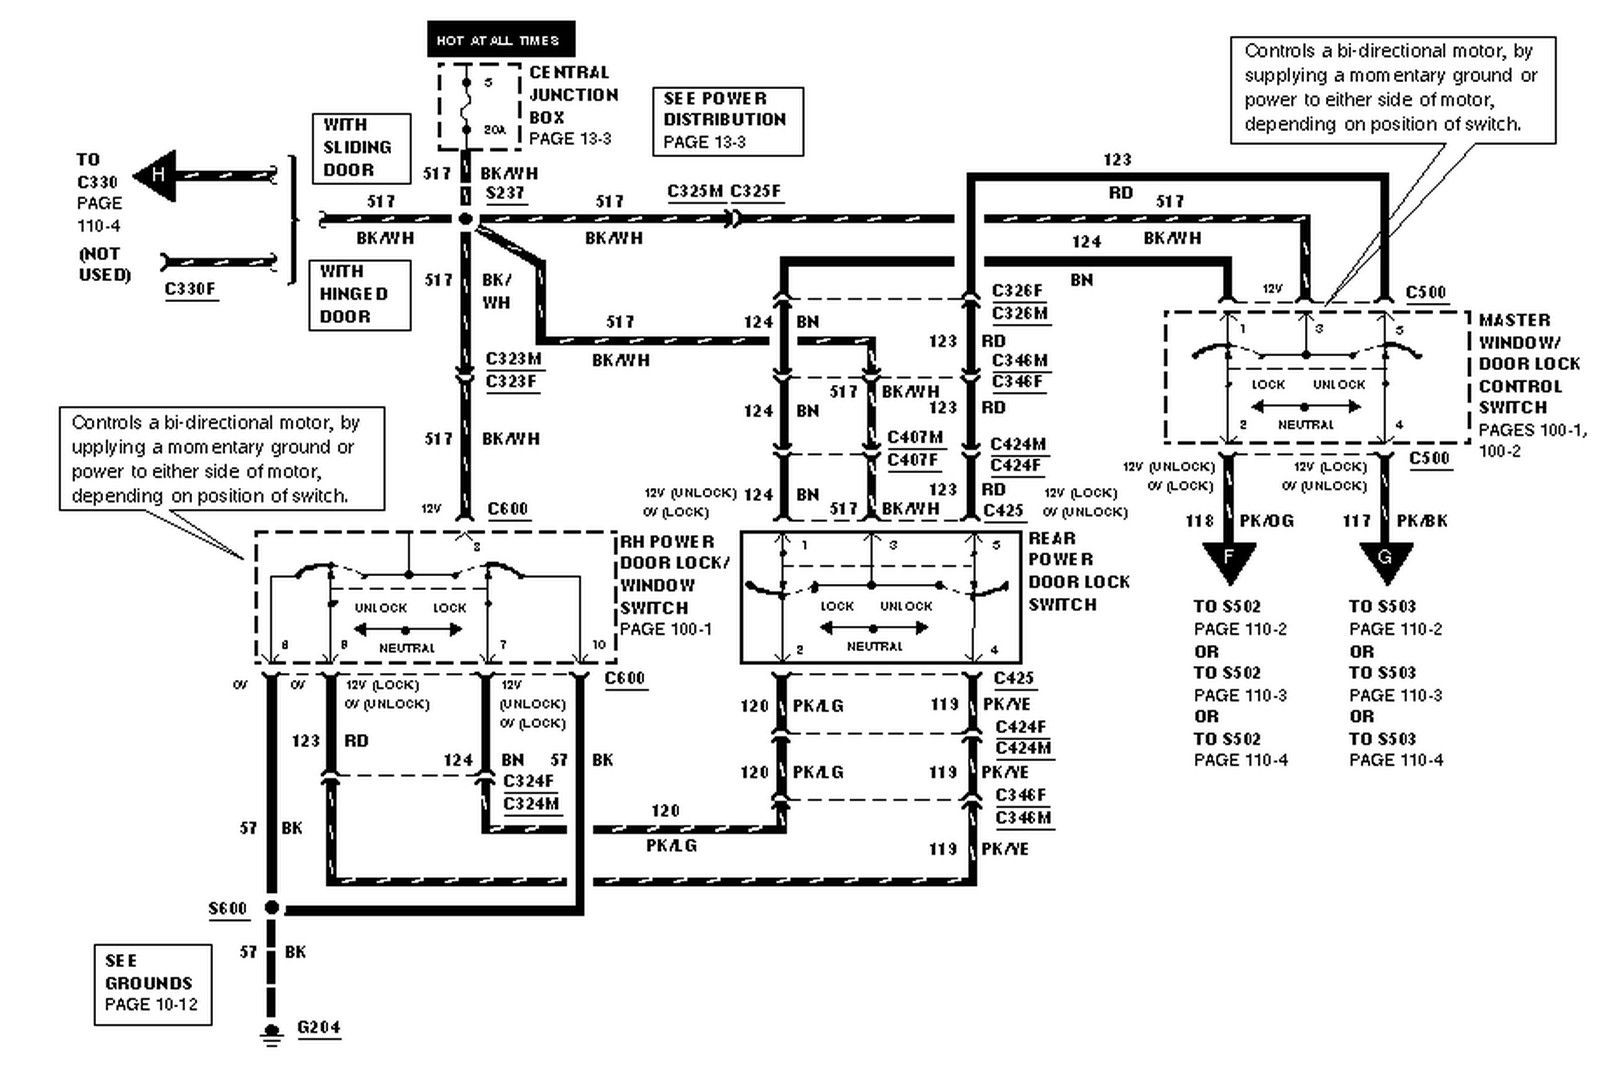 Wiring Diagram 4x4 F150 2005 - Wiring Diagram